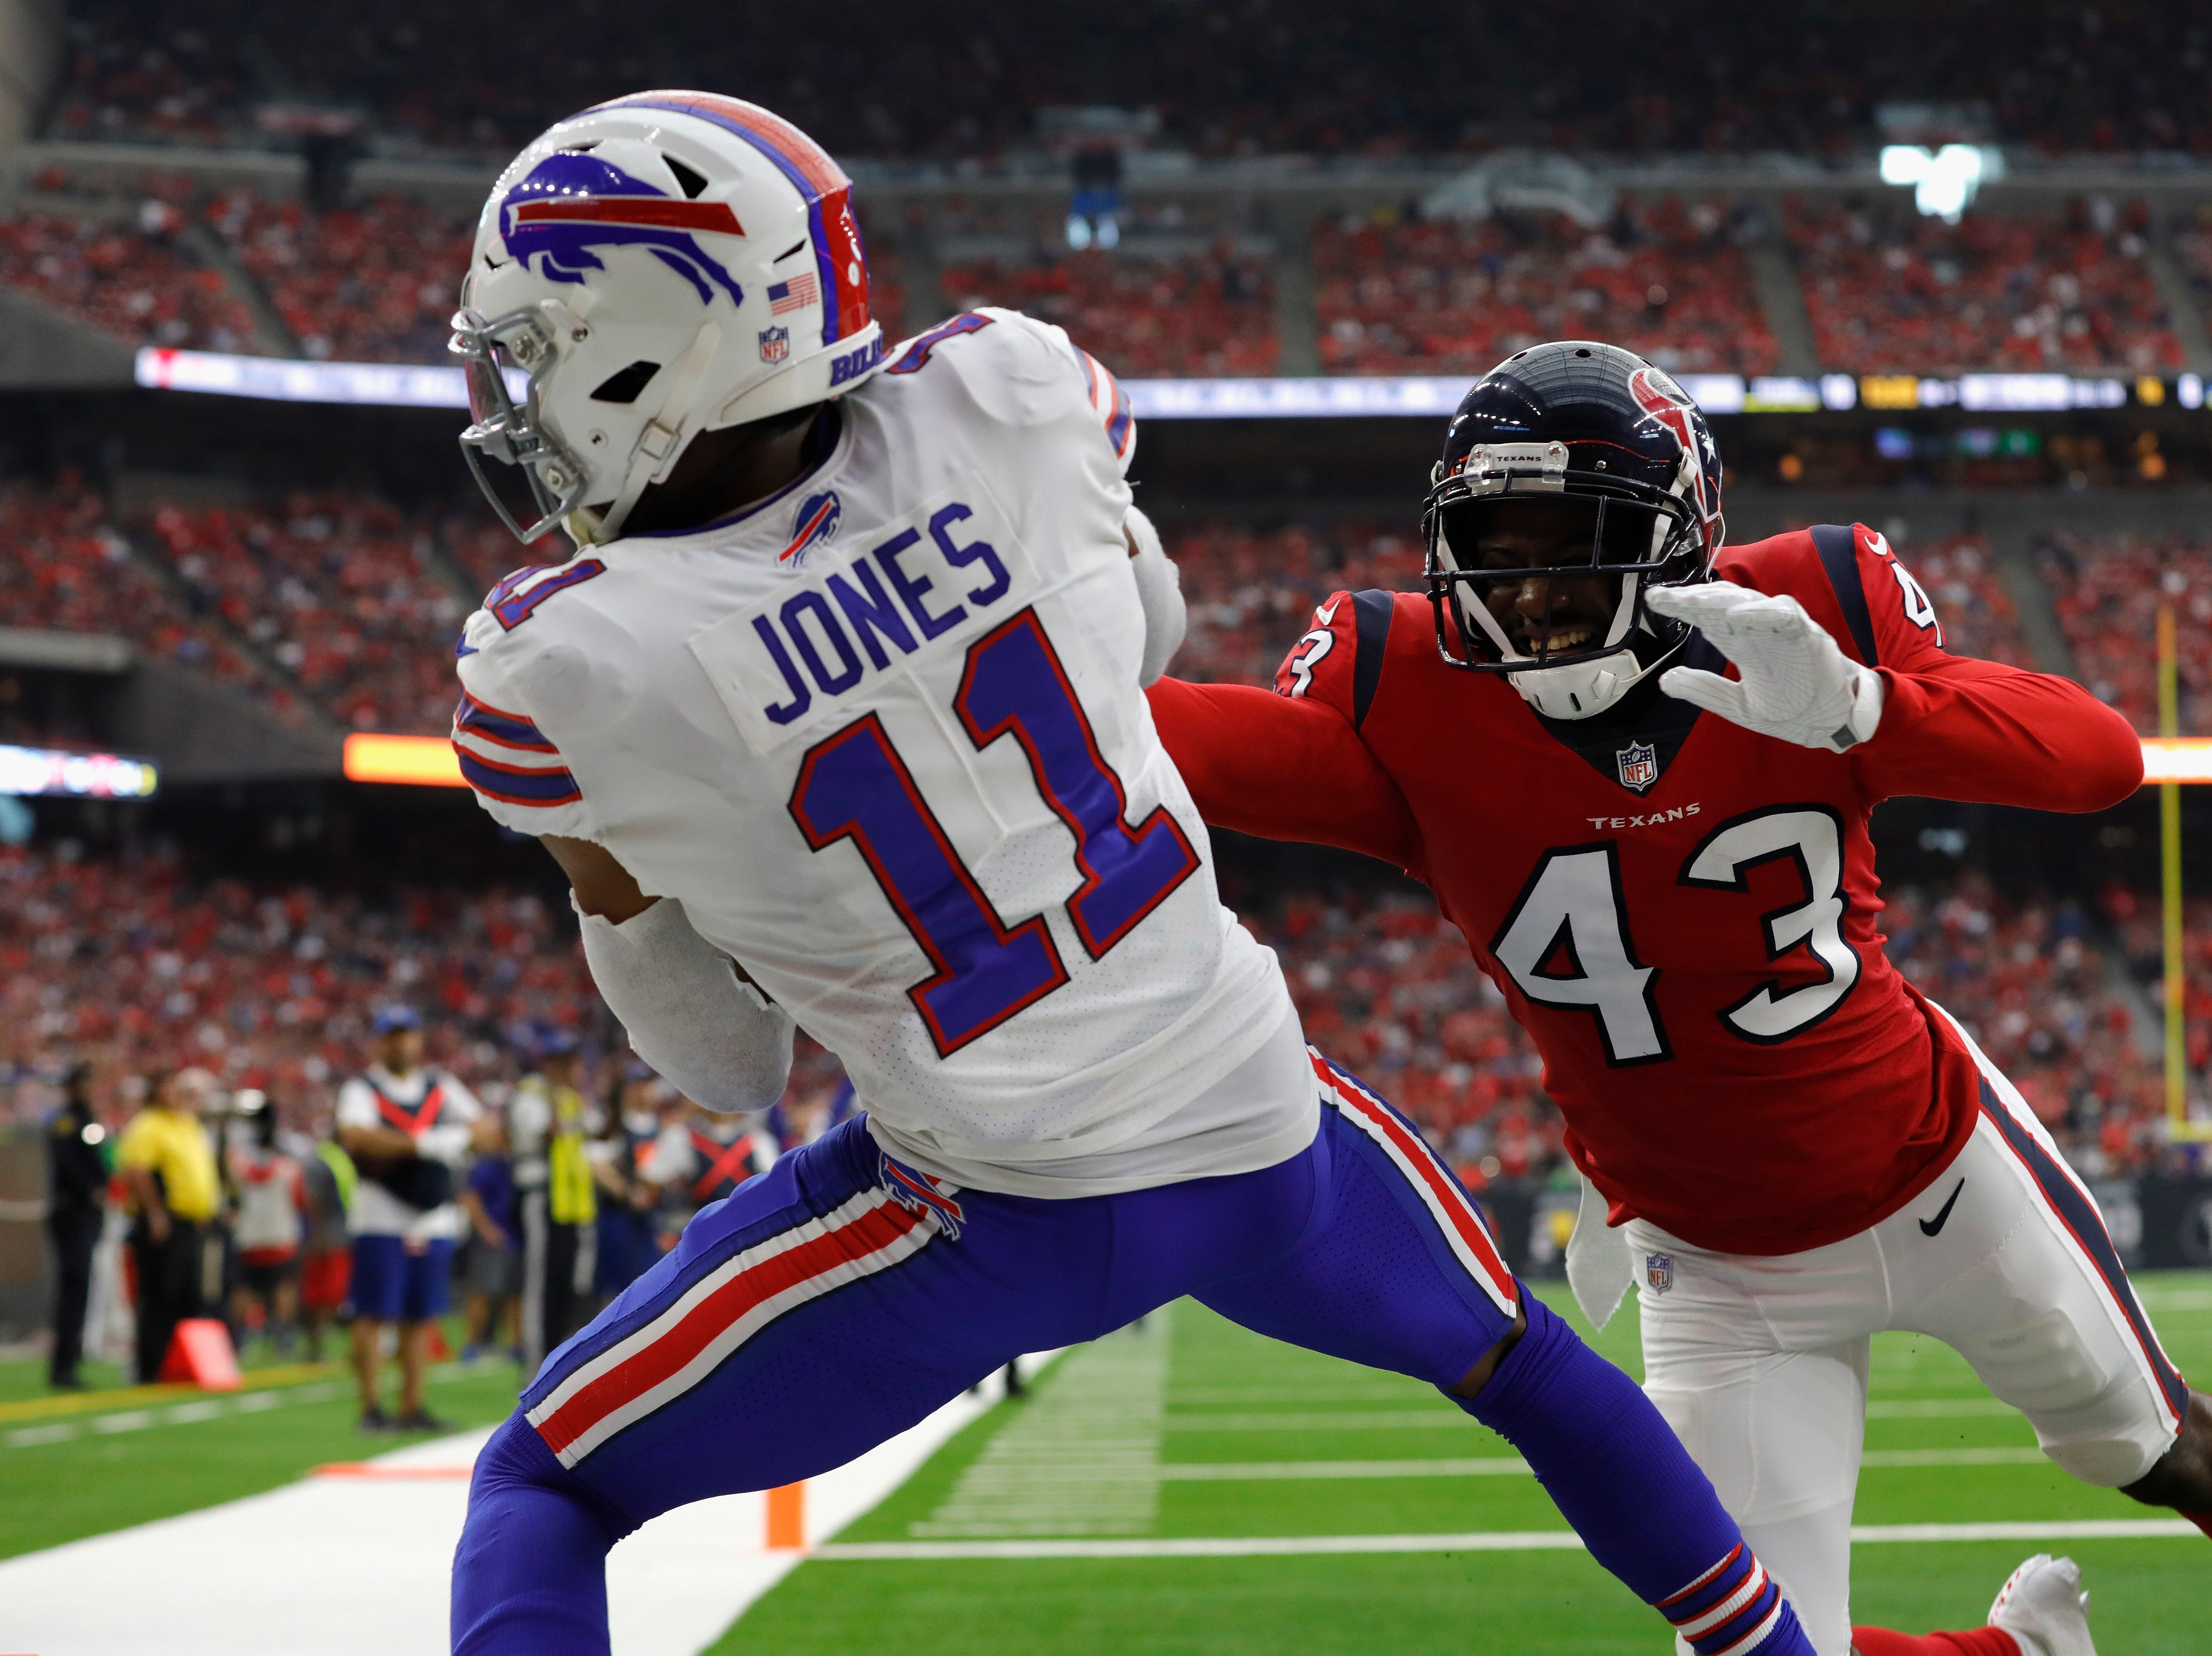 HOUSTON, TX - OCTOBER 14:  Zay Jones #11 of the Buffalo Bills catches a touchdown pass defended by Shareece Wright #43 of the Houston Texans in the fourth quarter at NRG Stadium on October 14, 2018 in Houston, Texas.  (Photo by Tim Warner/Getty Images)